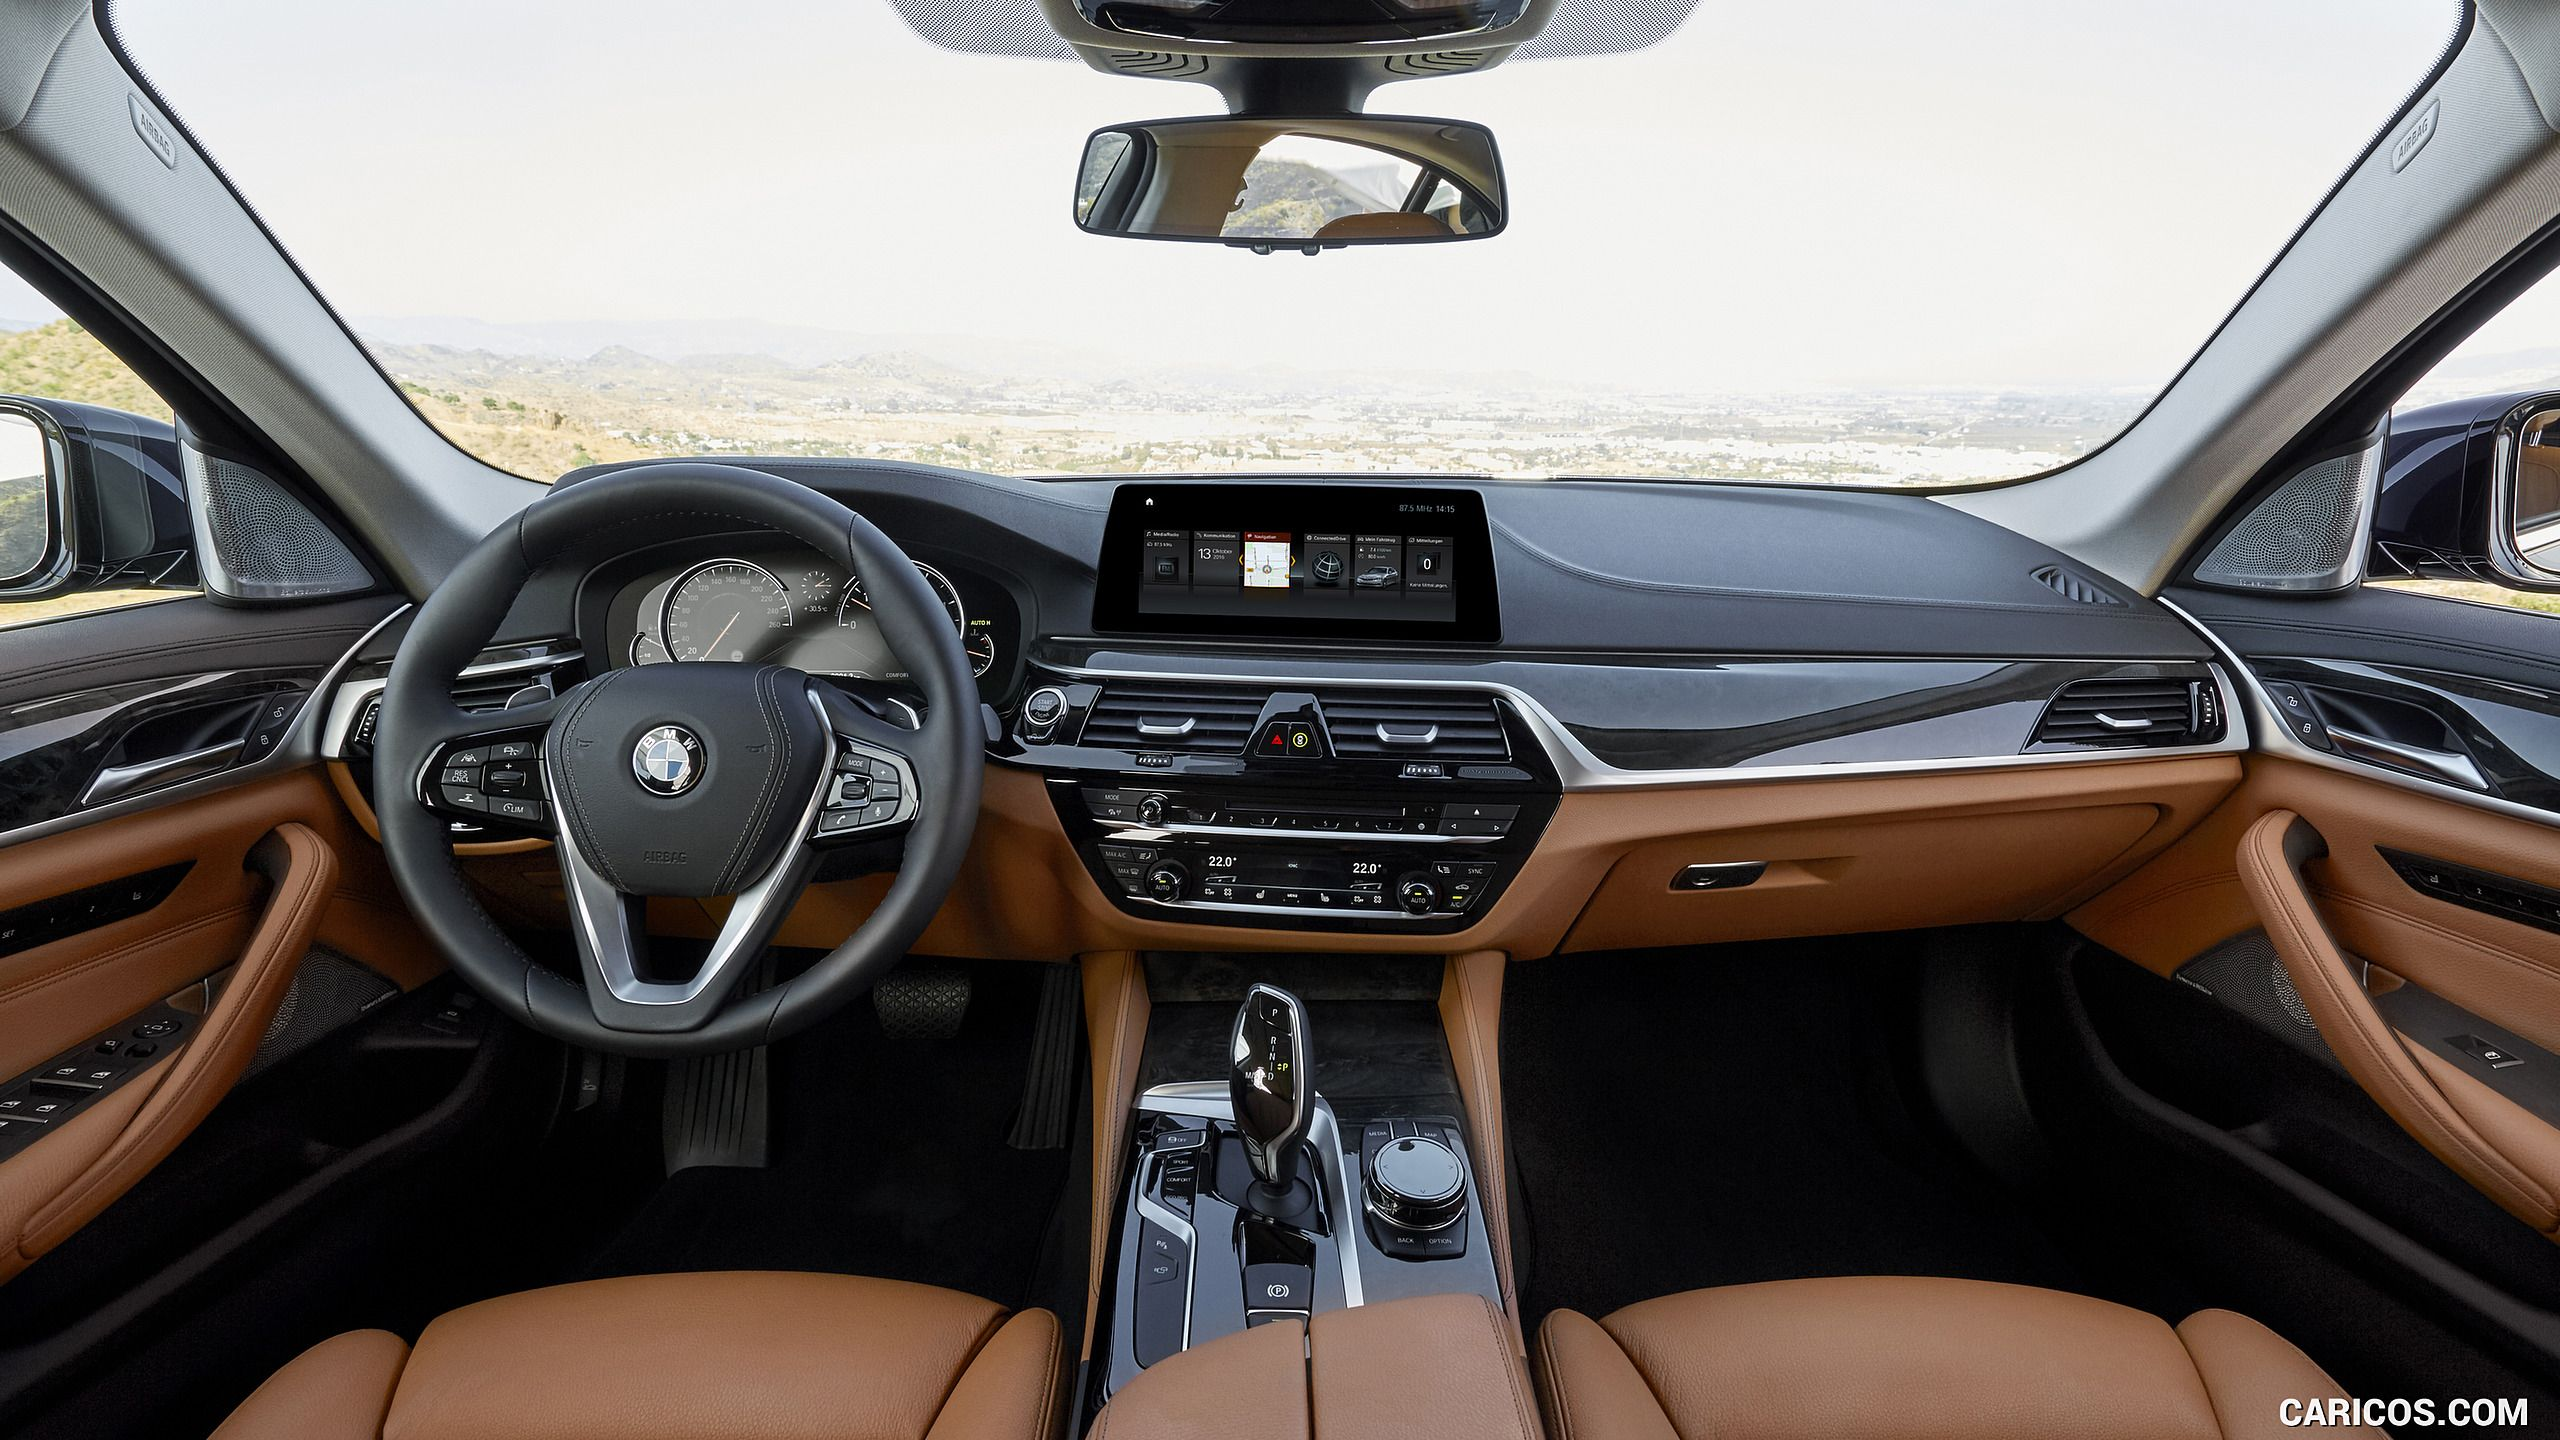 2017 Bmw 5 Series 530d Xdrive Diesel Luxury Line Interior Cockpit